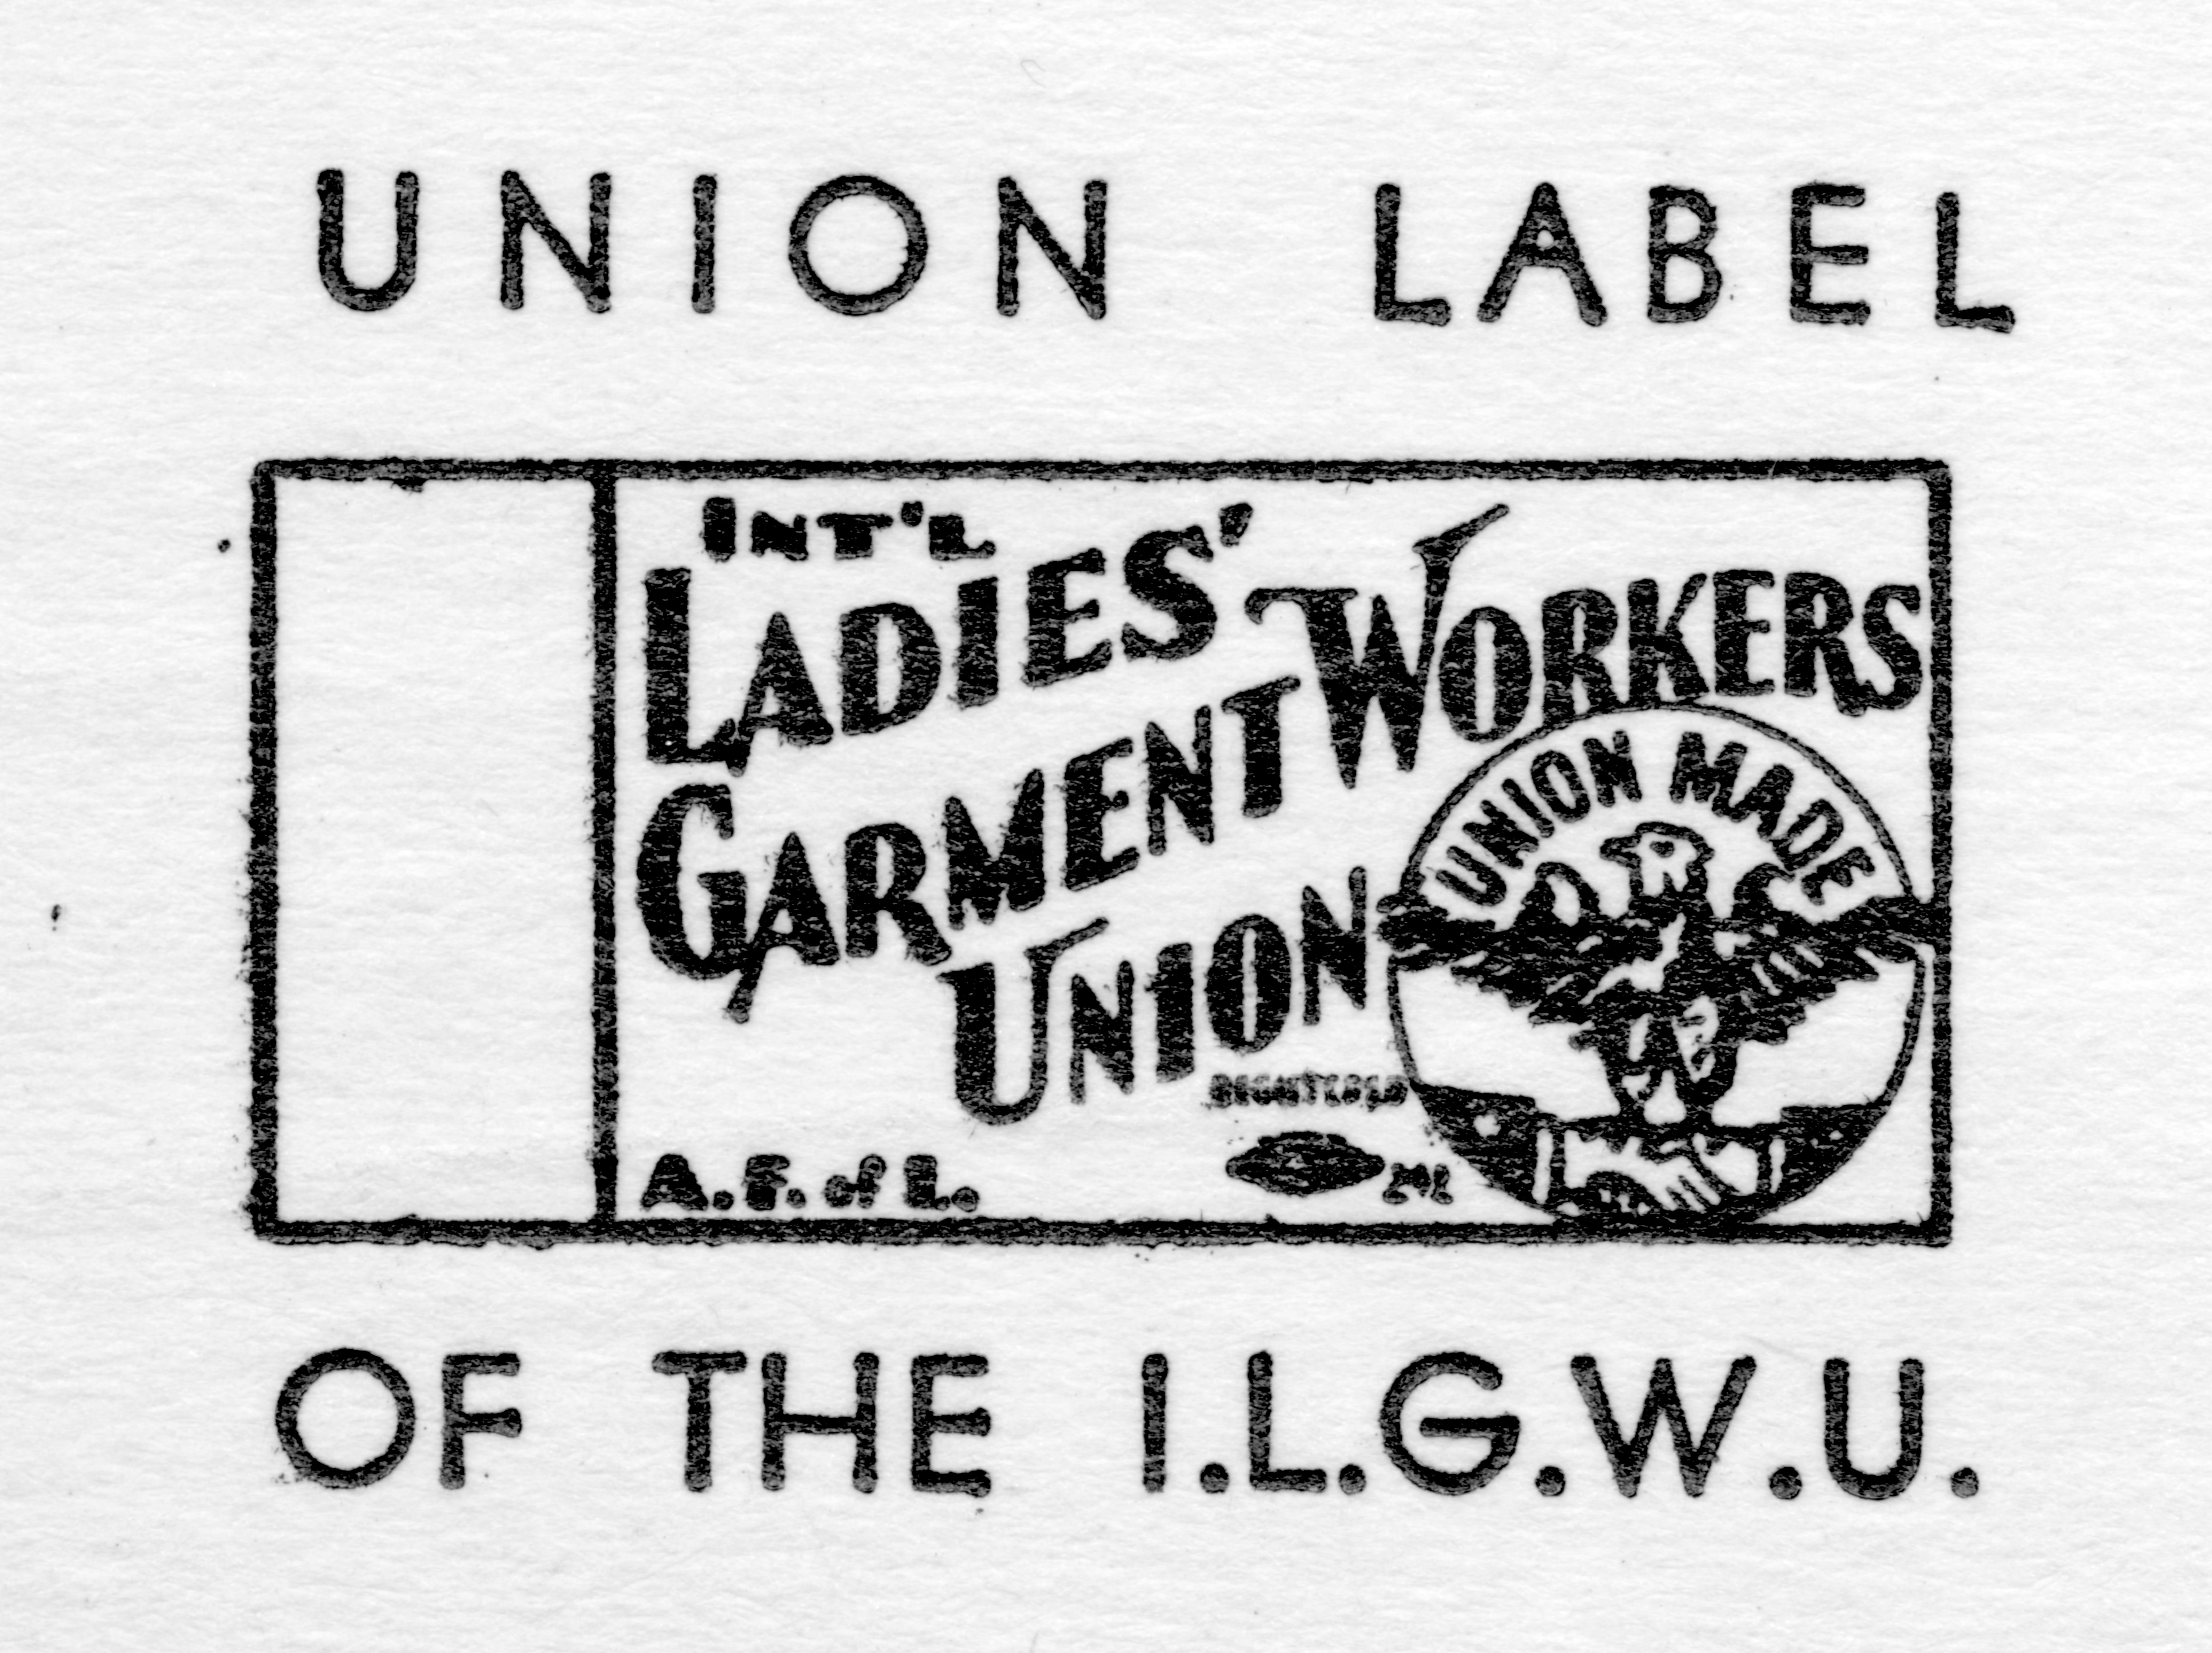 """Look for the Union Label..."" When ILGWU founders met on June 3, 1900 and named their union, they immediately adopted a label for it. Early results were encouraging but use remained limited and after 5 years the first label drive ended with only one company in Kalamazoo continuing to use the label. ILGWU called for use of a union label at its first convention. Its use was slow to take hold however, as it was optional and seen as being of limited use. (Cornell University ILR School / Kheel Center ILGWU Collection)"